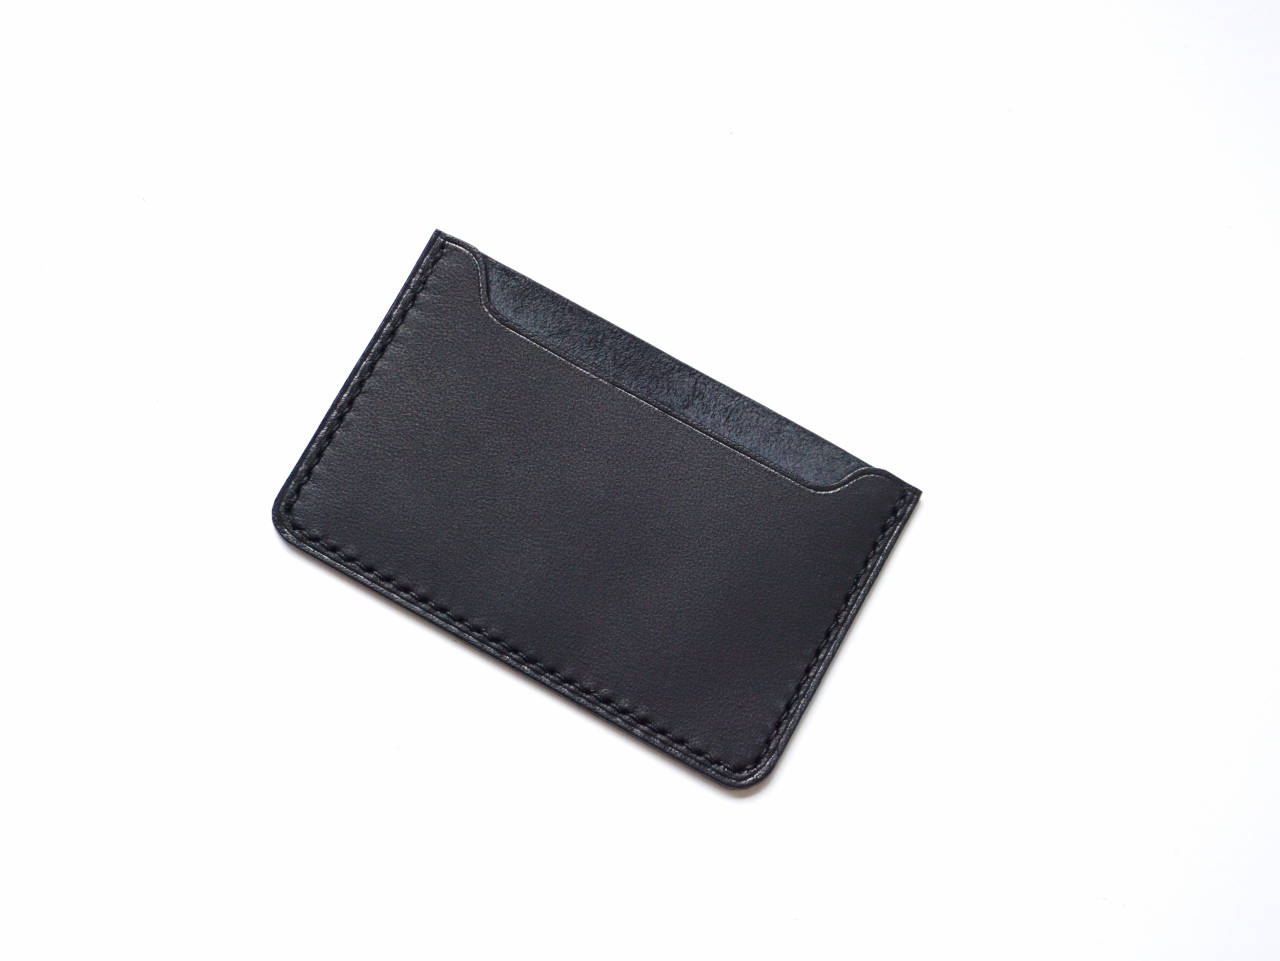 Single Card Holder - Black.jpg